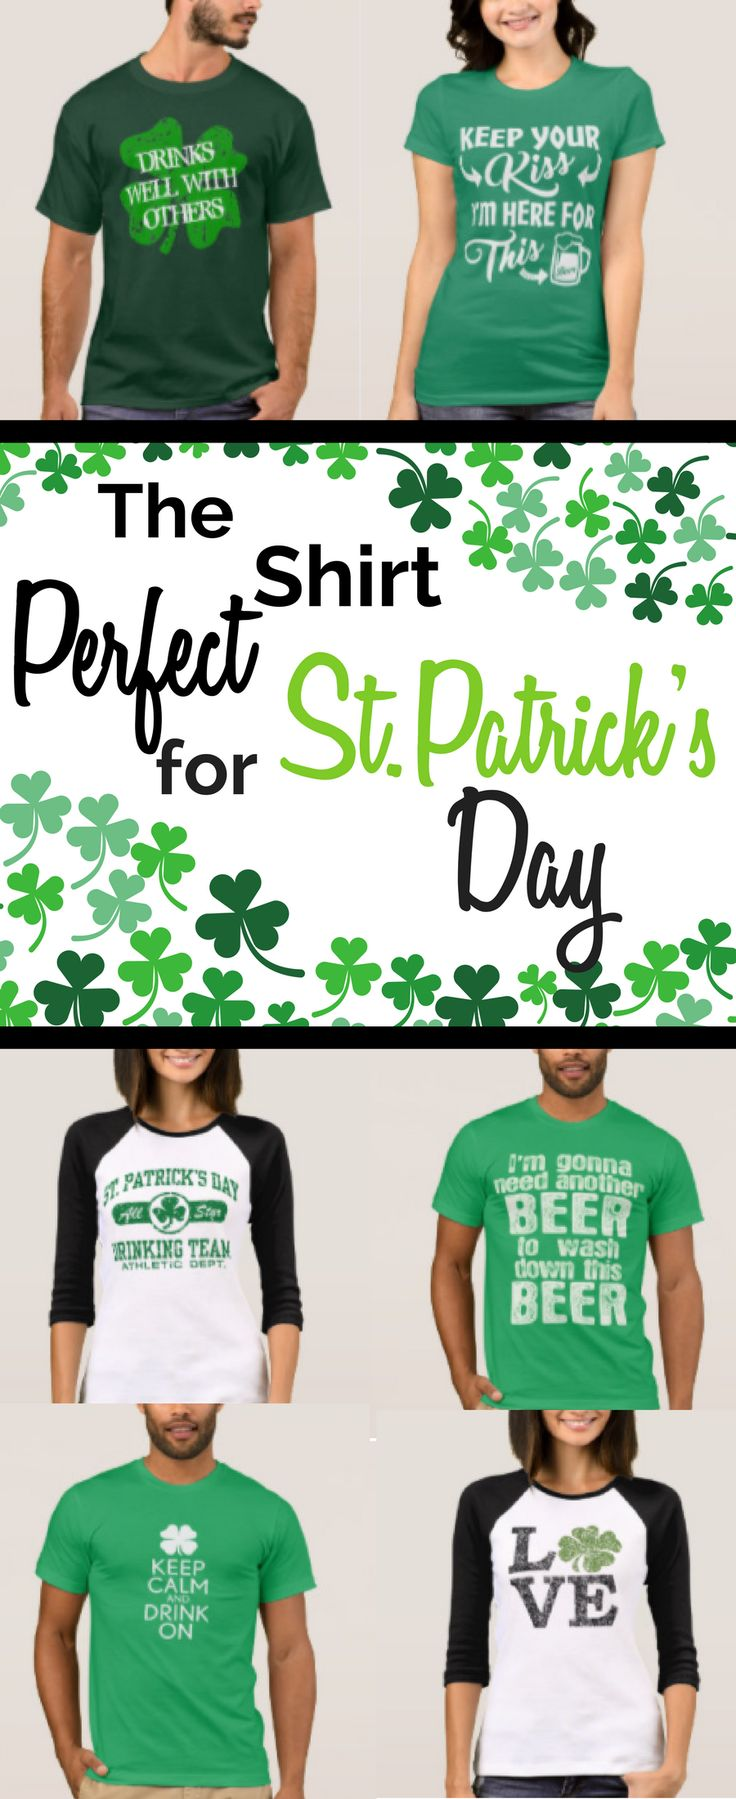 Are you looking for the perfect shirt for St. Patrick's Day? We've got leprechauns, pot of gold, rainbows, beer shirts and much more. Available in kids, adults and babies. Happy St. Patrick's Day